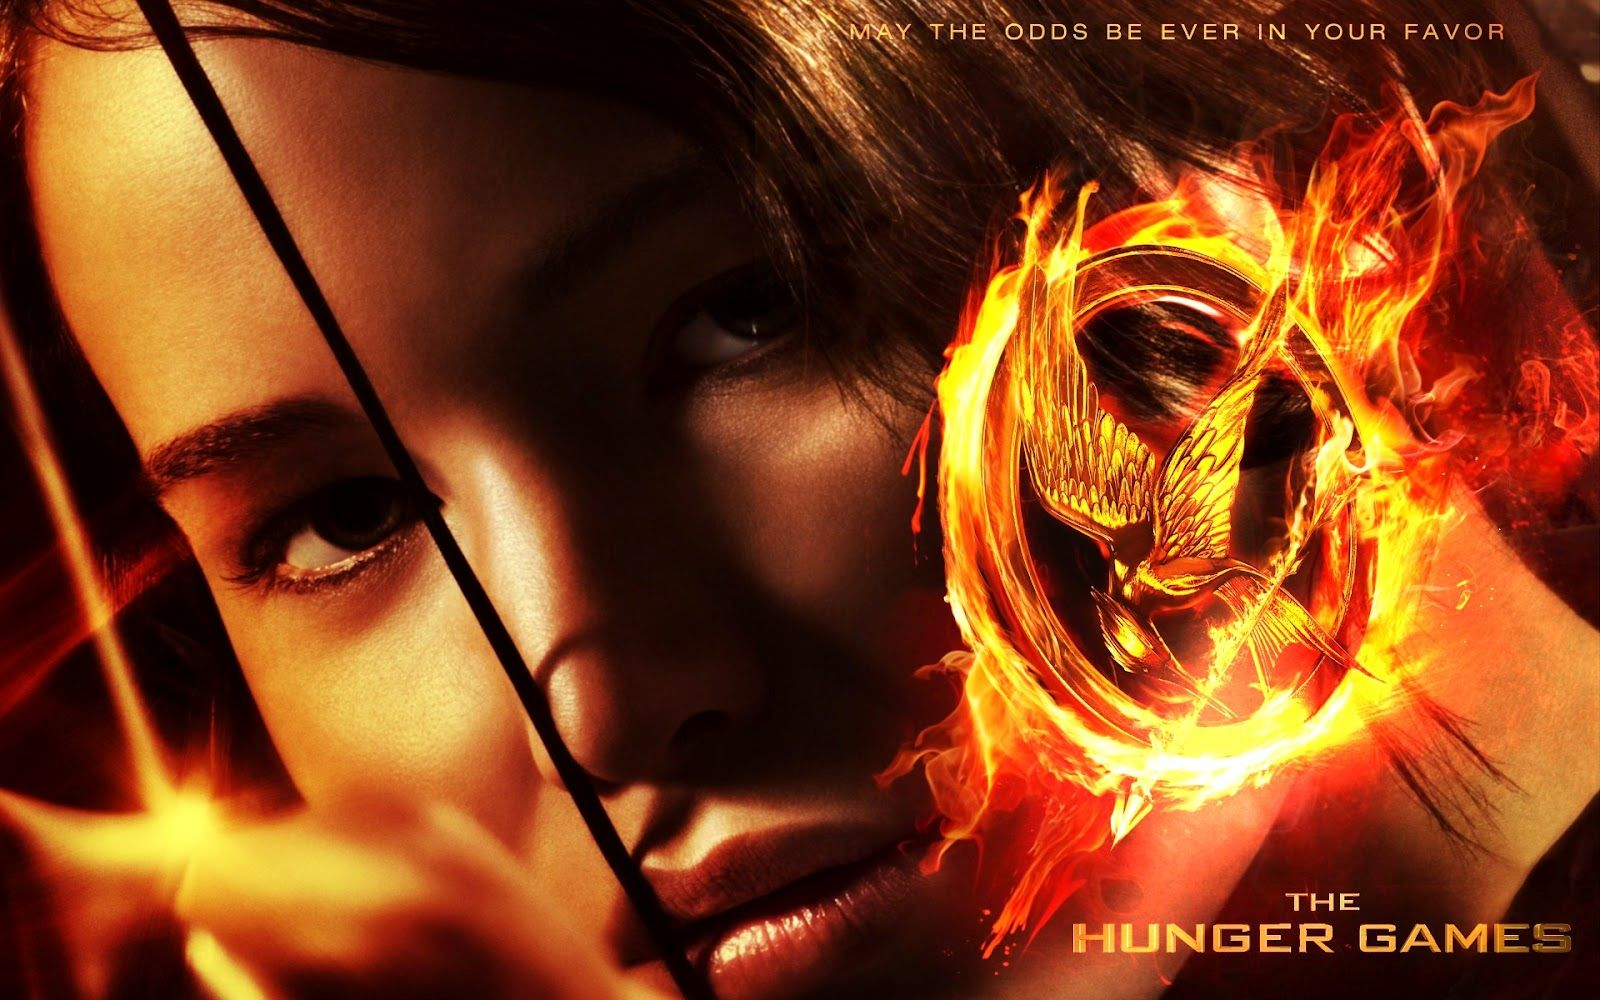 The hunger games hd wallpapers backgrounds wallpaper 16001000 the hunger games hd wallpapers backgrounds wallpaper 16001000 hunger games wallpaper 33 wallpapers voltagebd Image collections